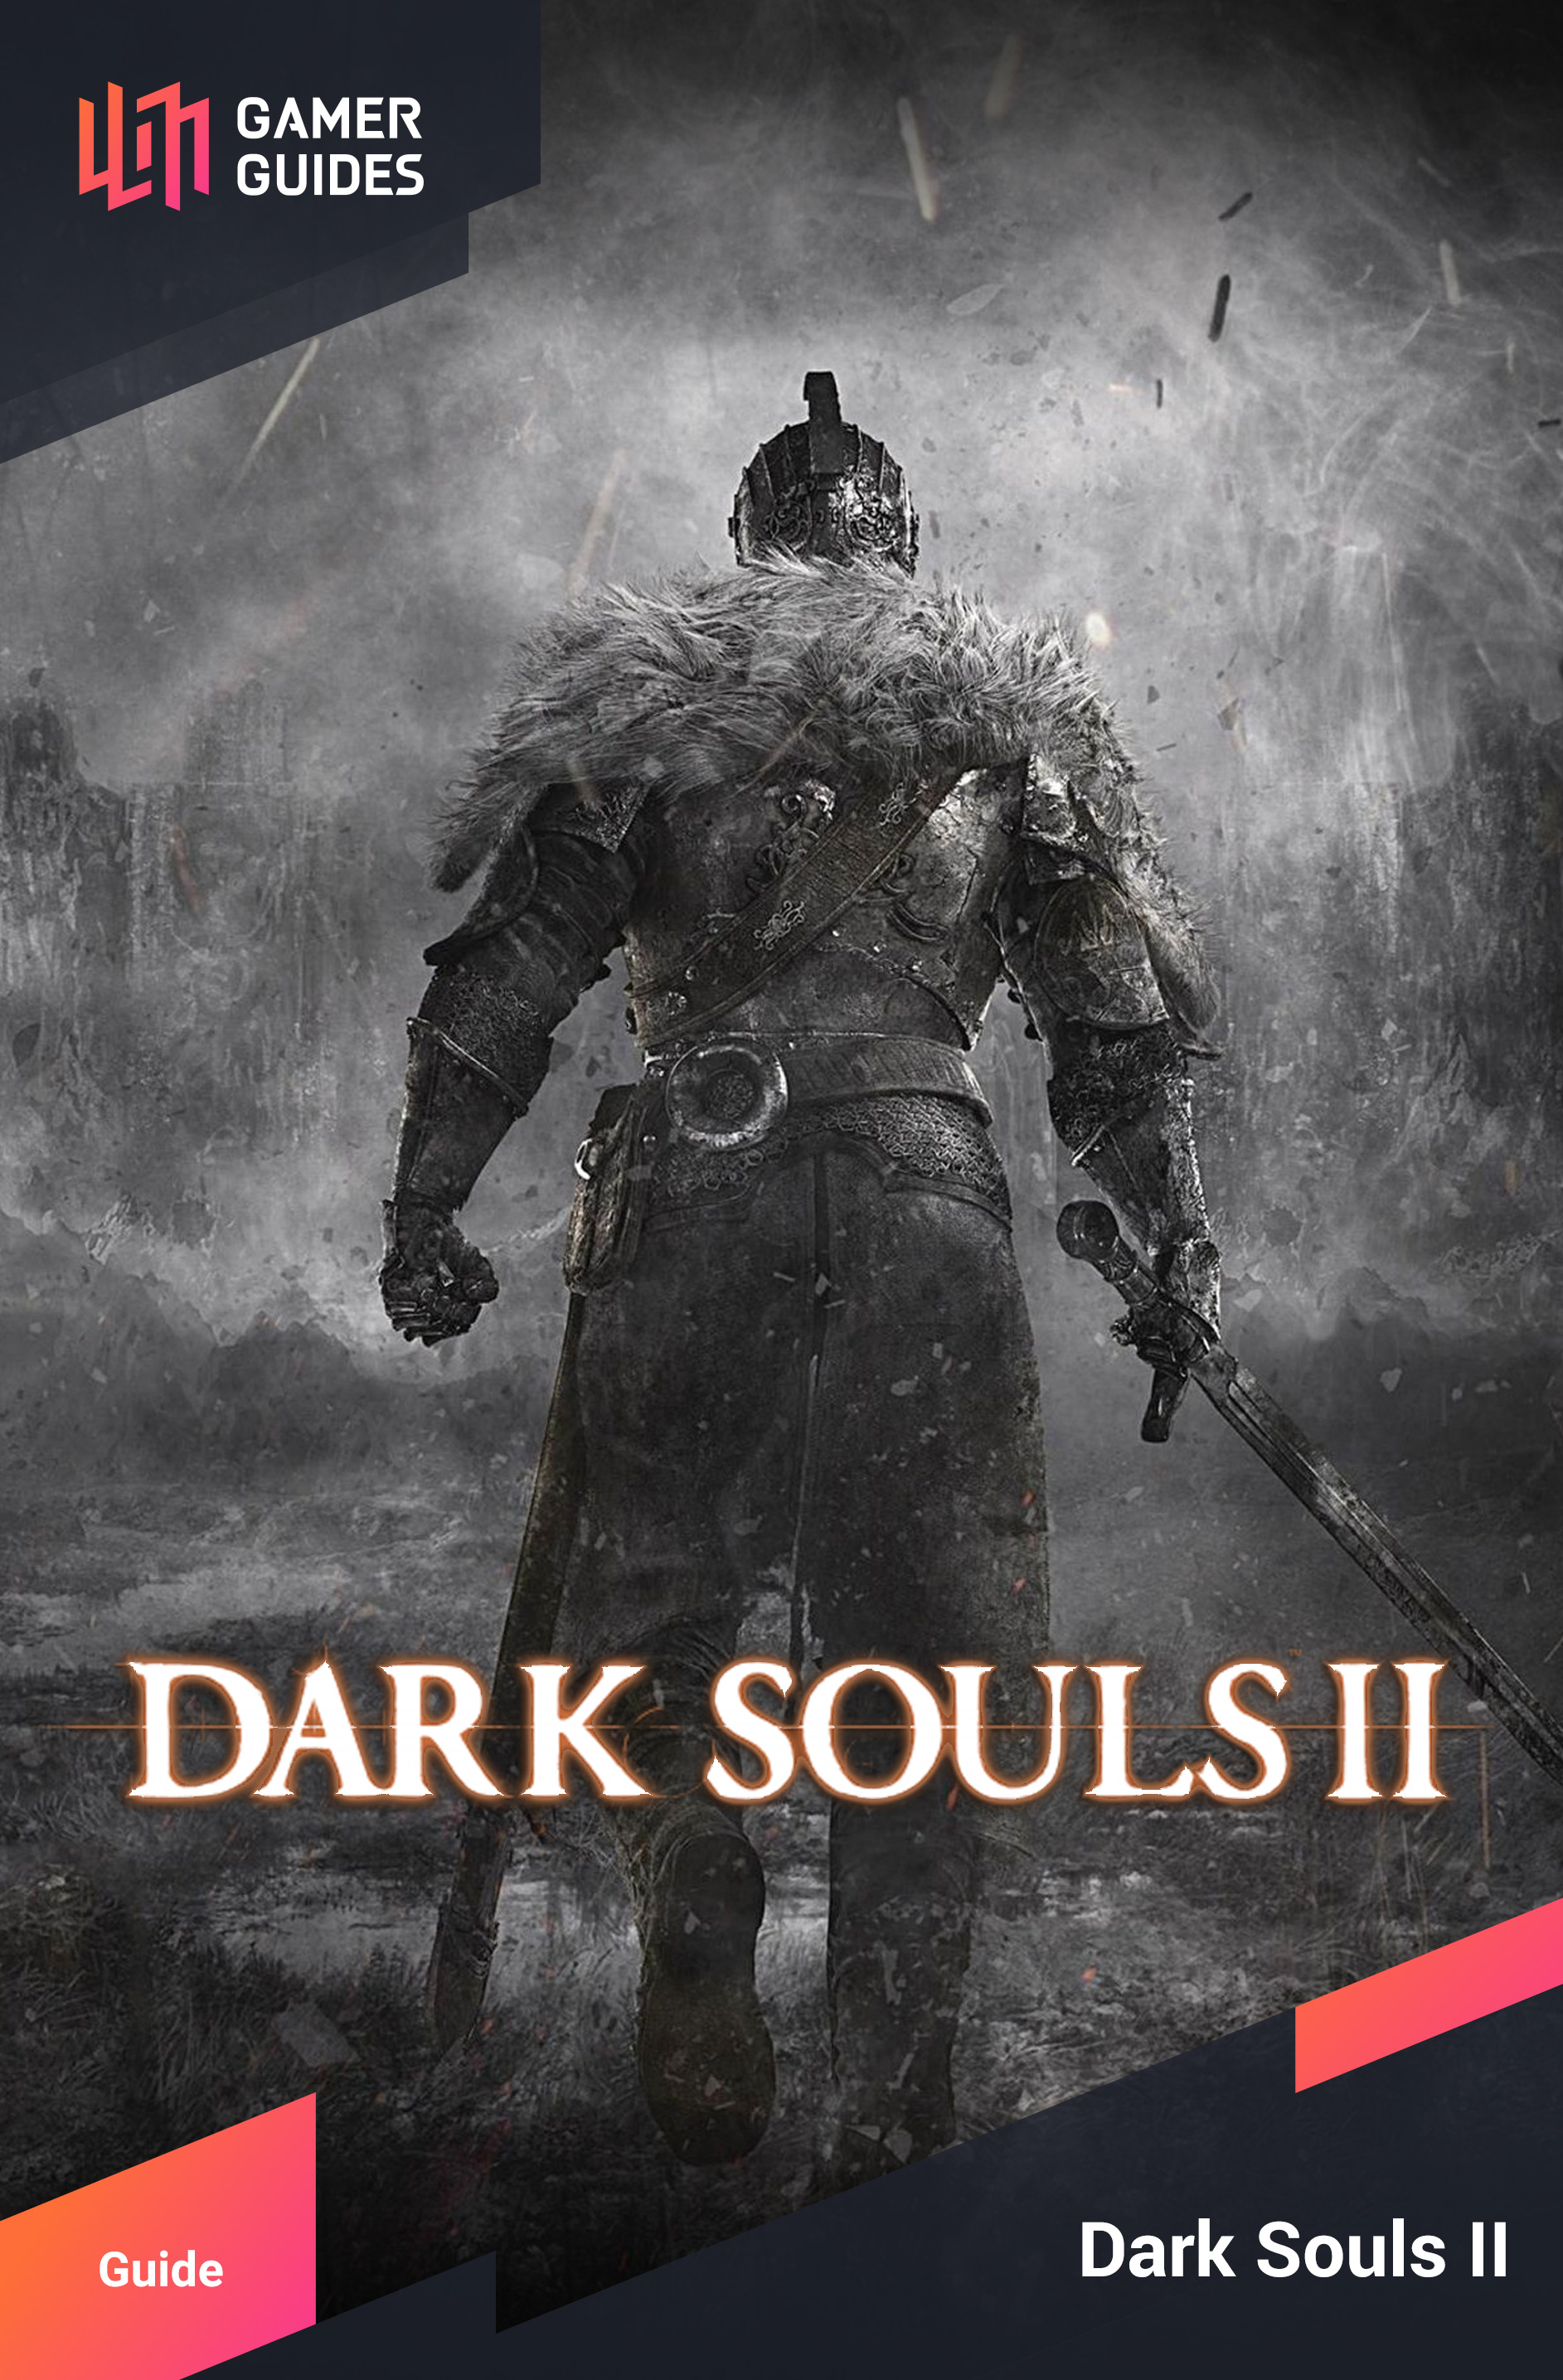 Dark souls 2 guide download pdf